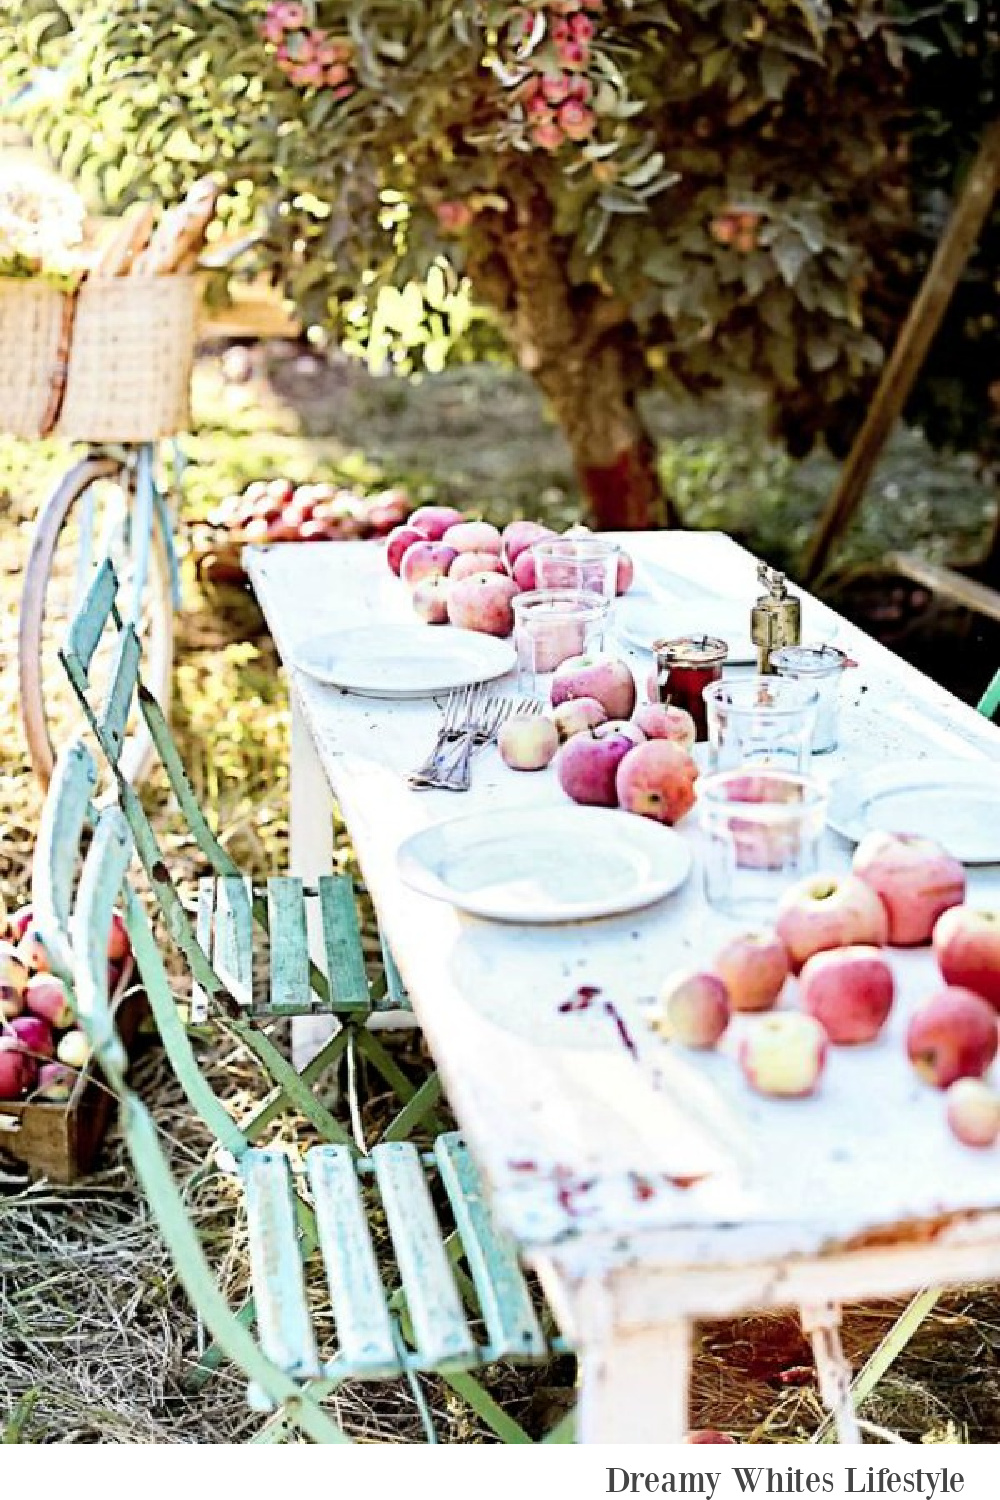 French farmhouse fall bliss in this outdoor dining vignette with farm table and bistro chairs - Dreamy Whites Atelier. Serene French Farmhouse Fall Decor Photos ahead!  #frenchfarmhouse #fallinspiration #apples #harvest #farmtable